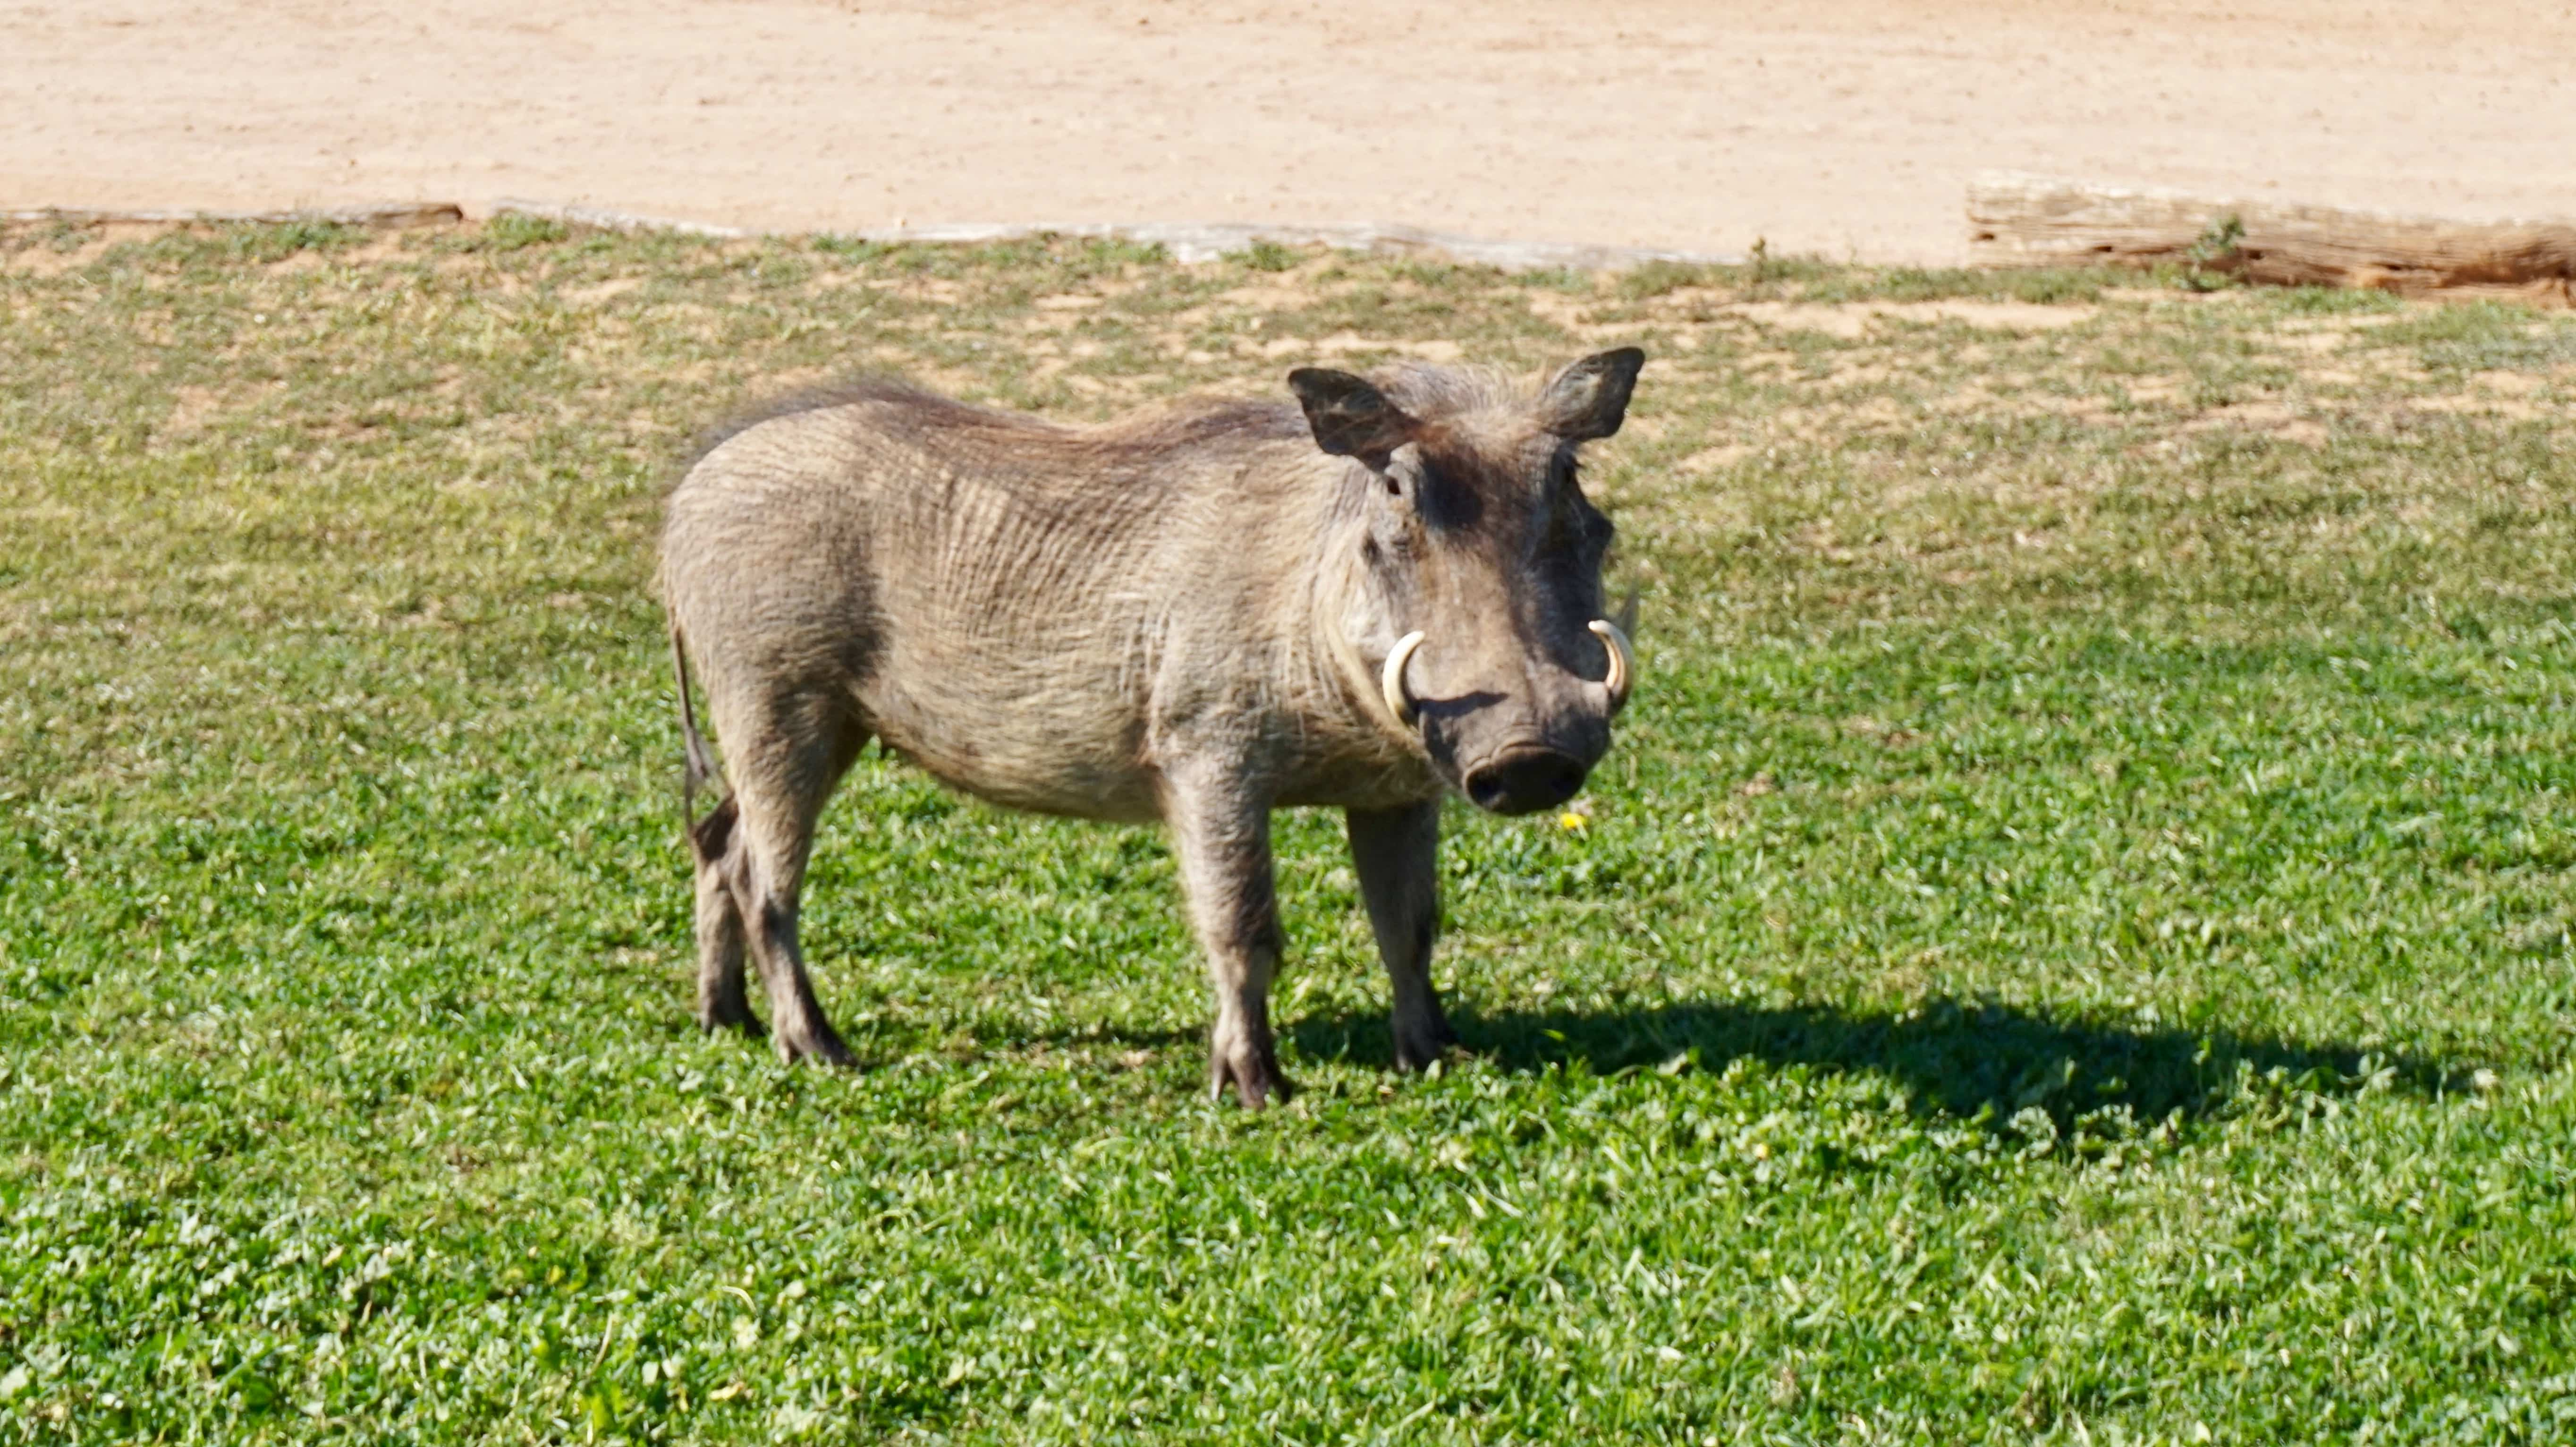 Warthog spotted on a self-drive safari at Addo Elephant National Park